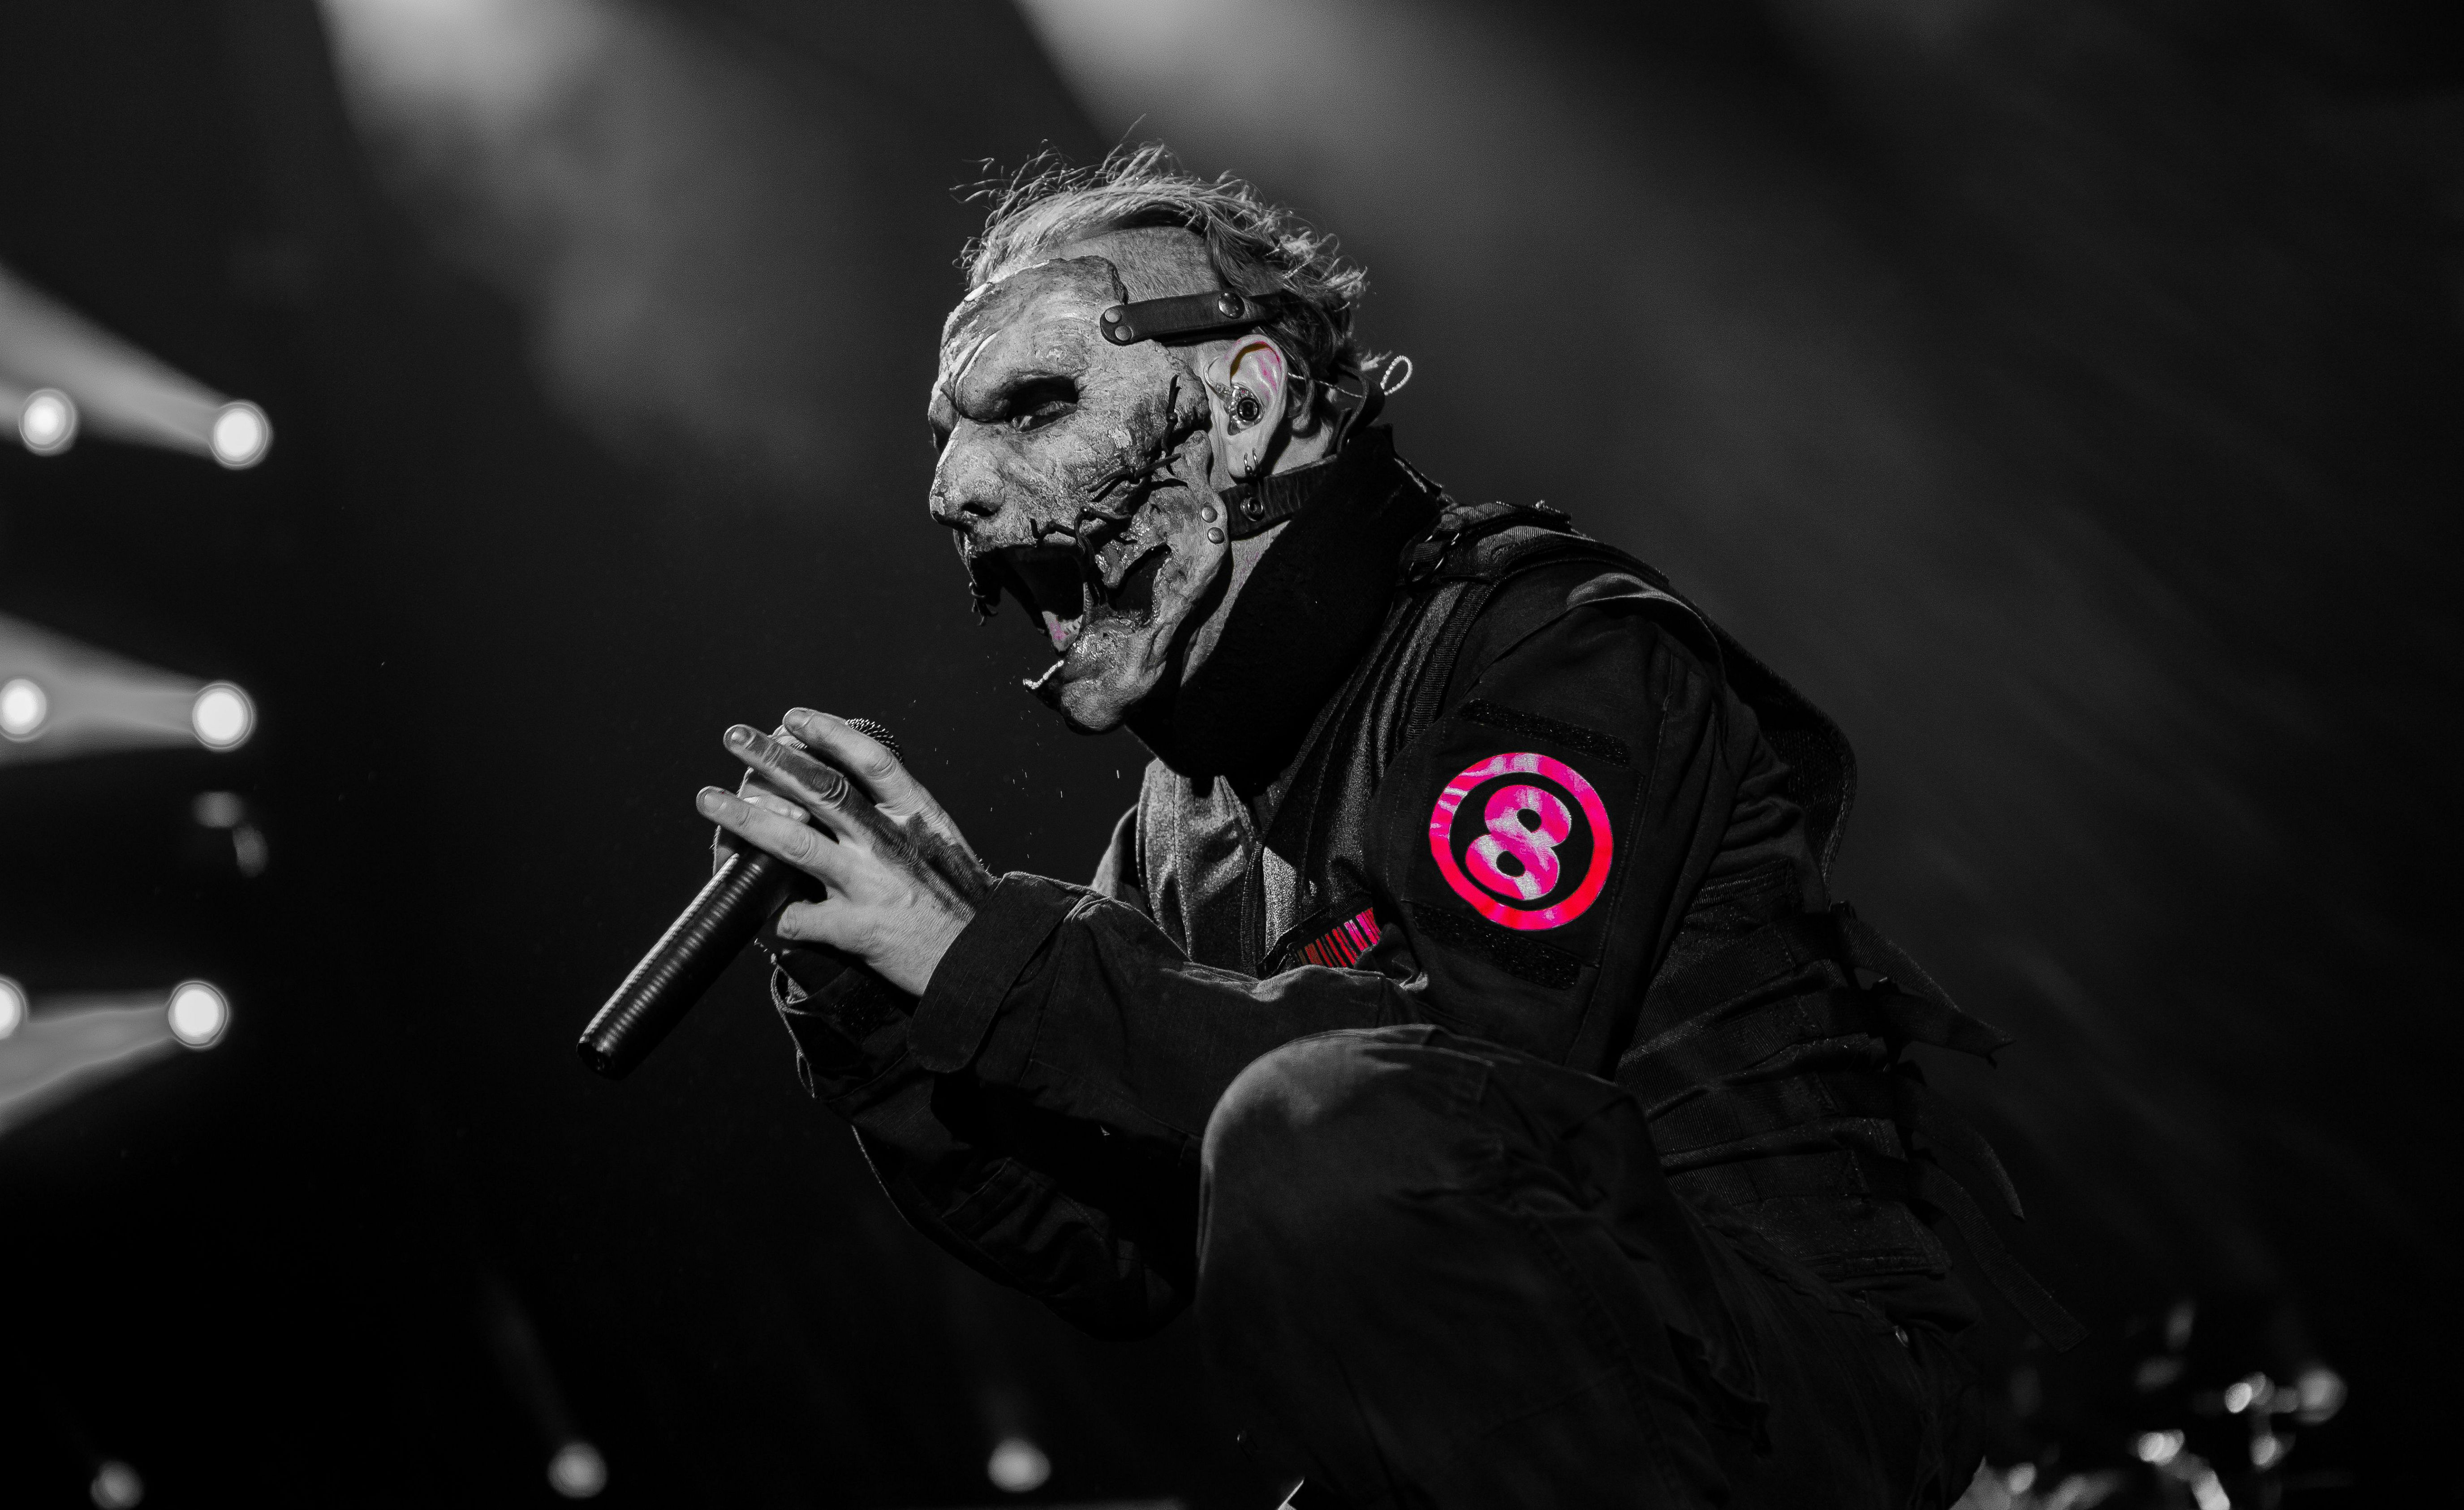 Slipknot wallpaper hd 2016 21 page 3 of 3 dzbc pages voltagebd Image collections